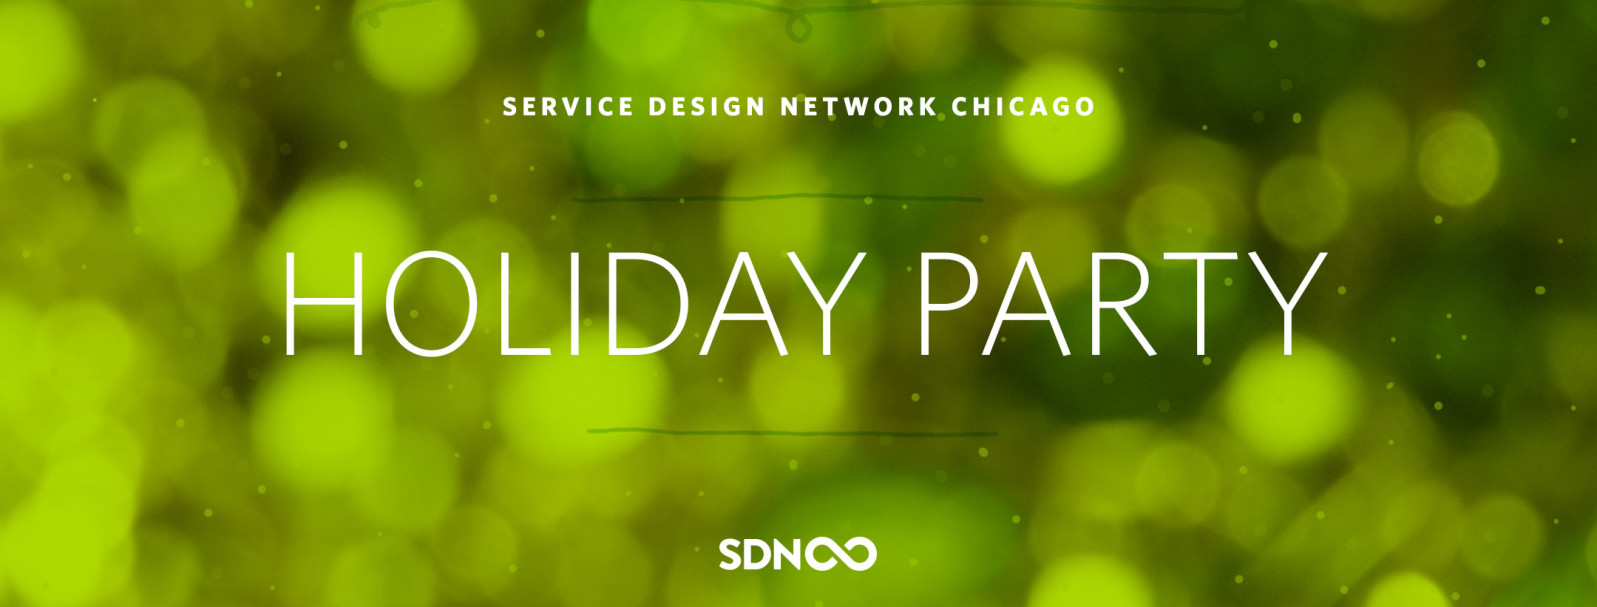 SDN Holiday Party